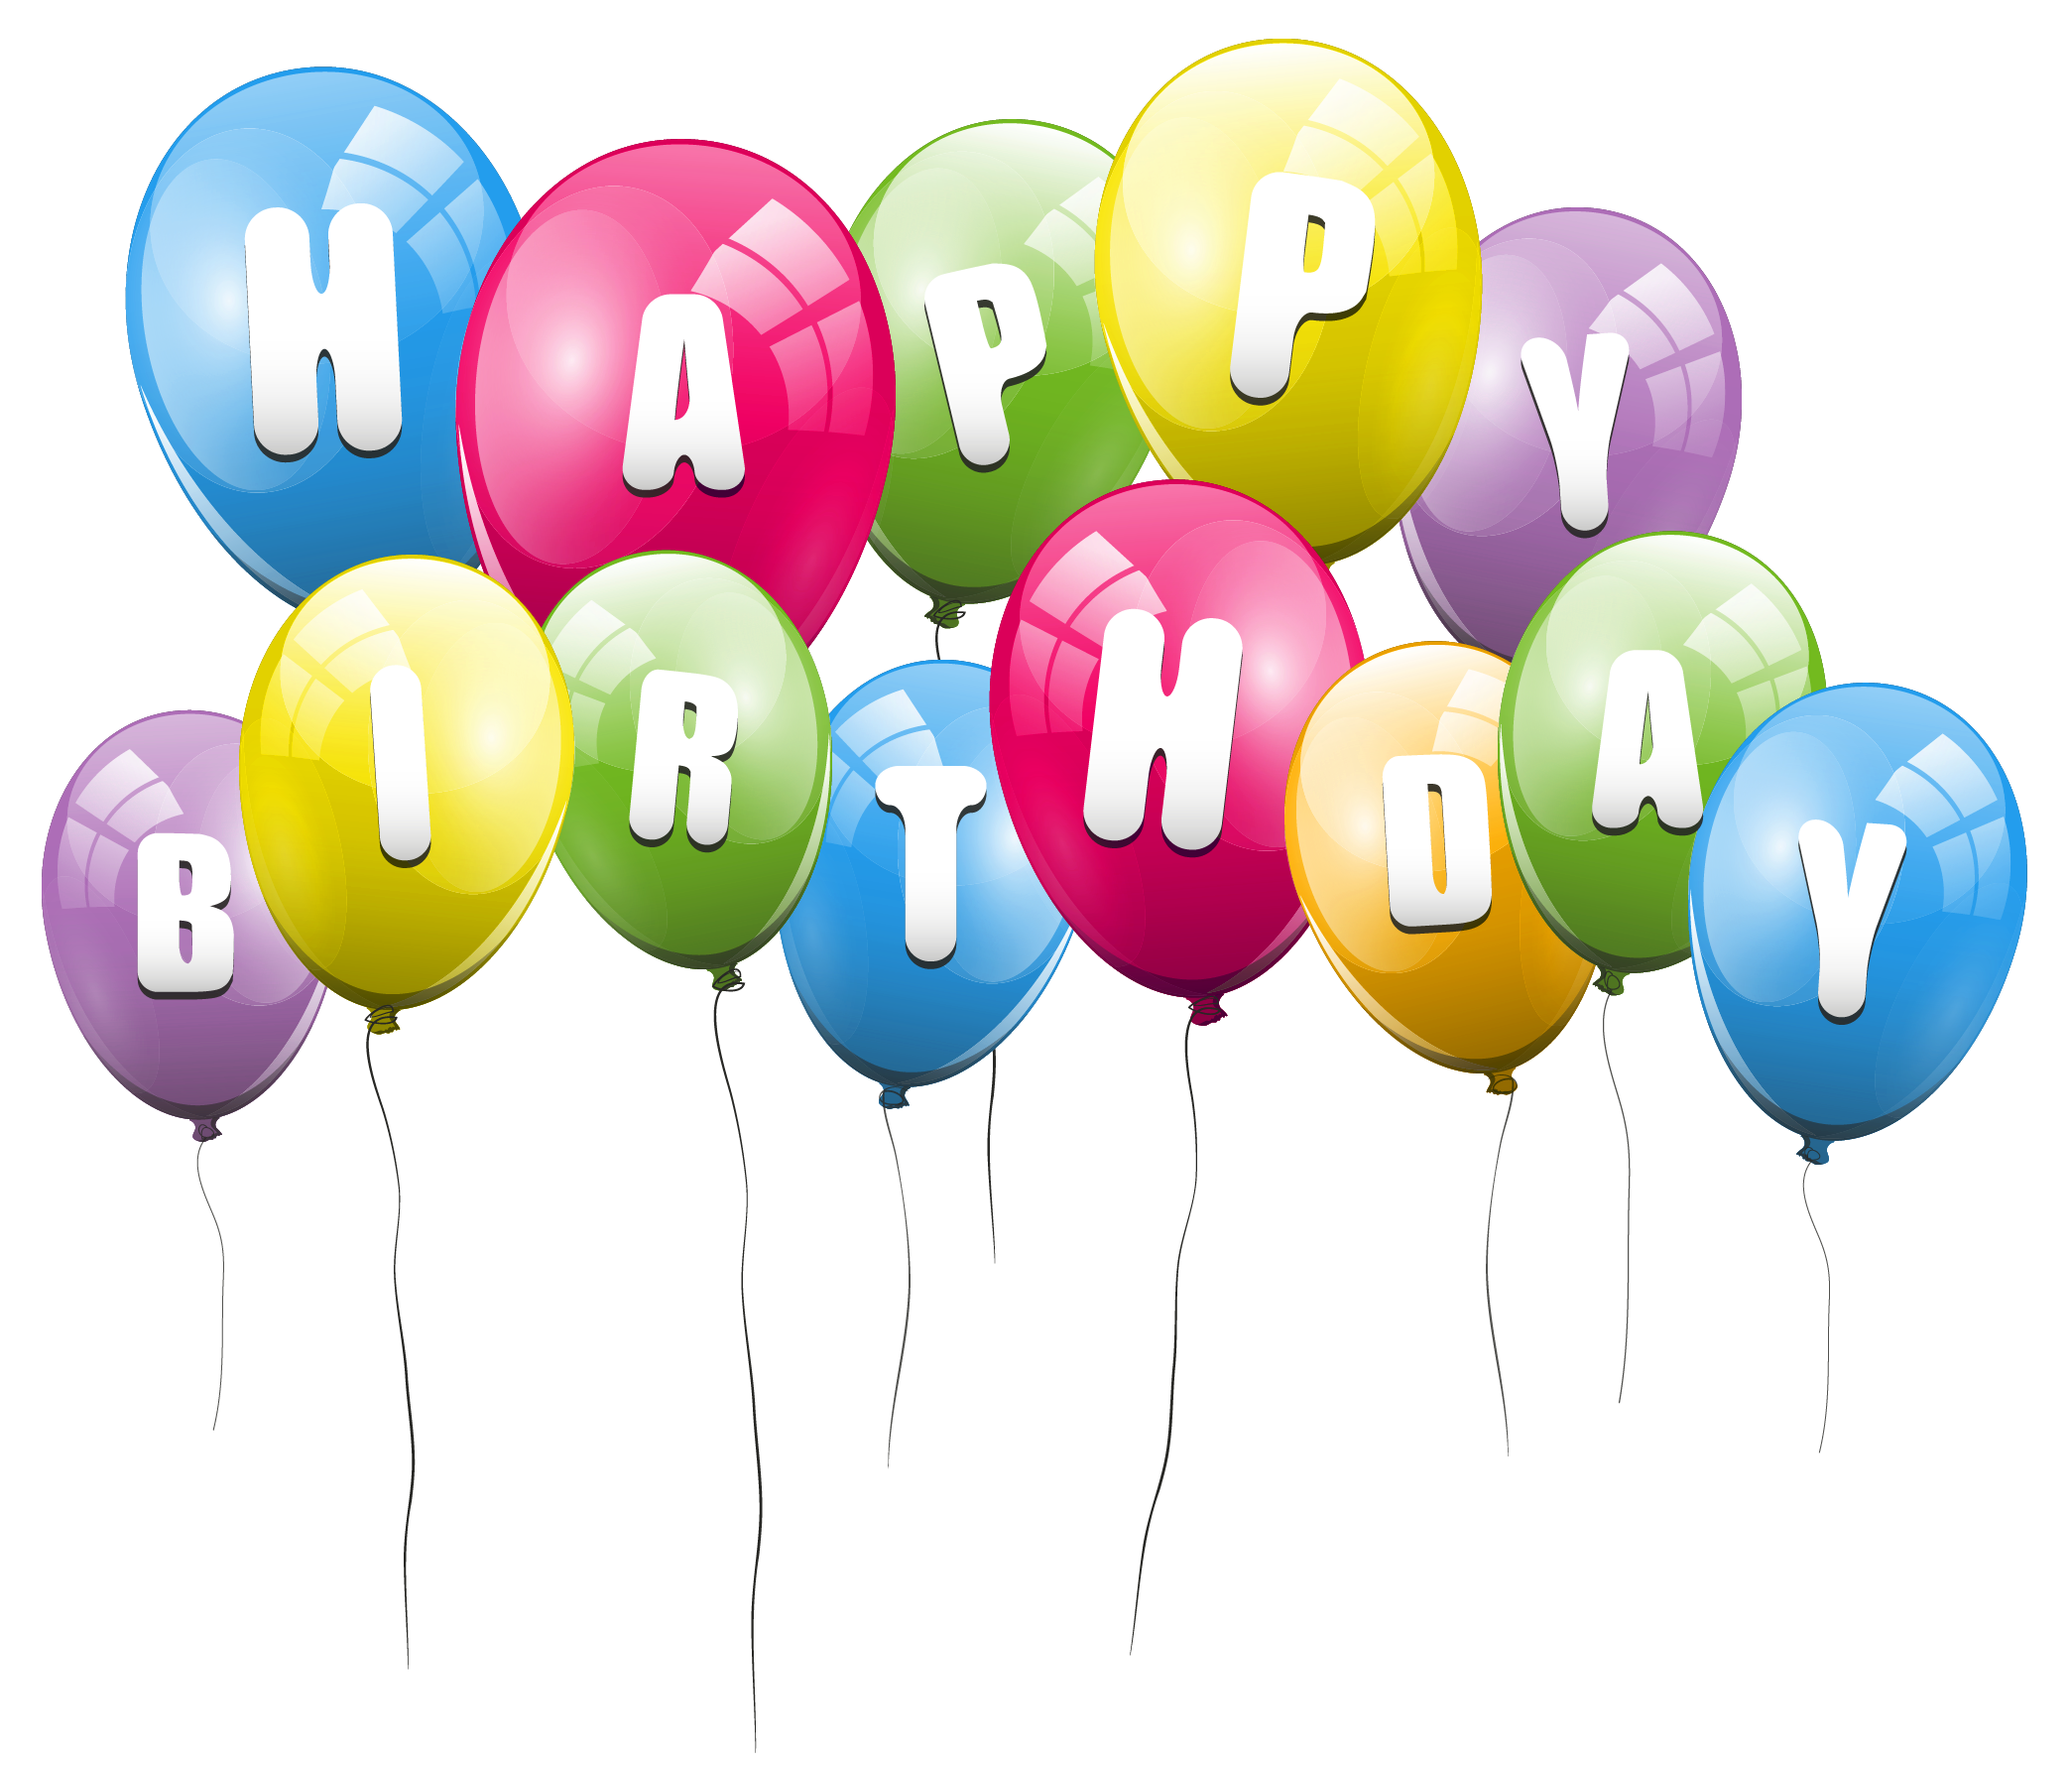 31 Birthday Balloon Png Free Cliparts Th-31 Birthday Balloon Png Free Cliparts That You Can Download To You-1